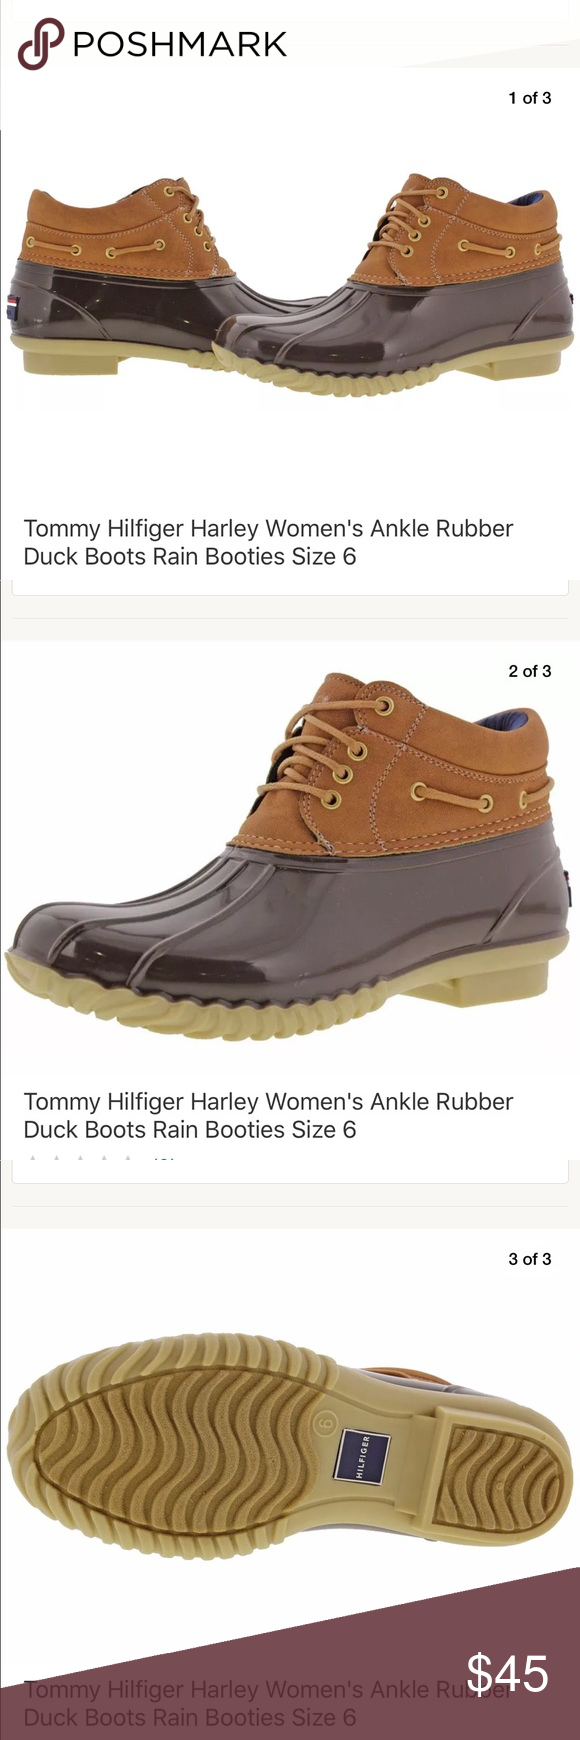 500d64bd1 Tommy Hilfiger Harley Ankle Rubber Duck Rain Boots Tommy Hilfiger Harley Women s  Ankle Rubber Duck Boots